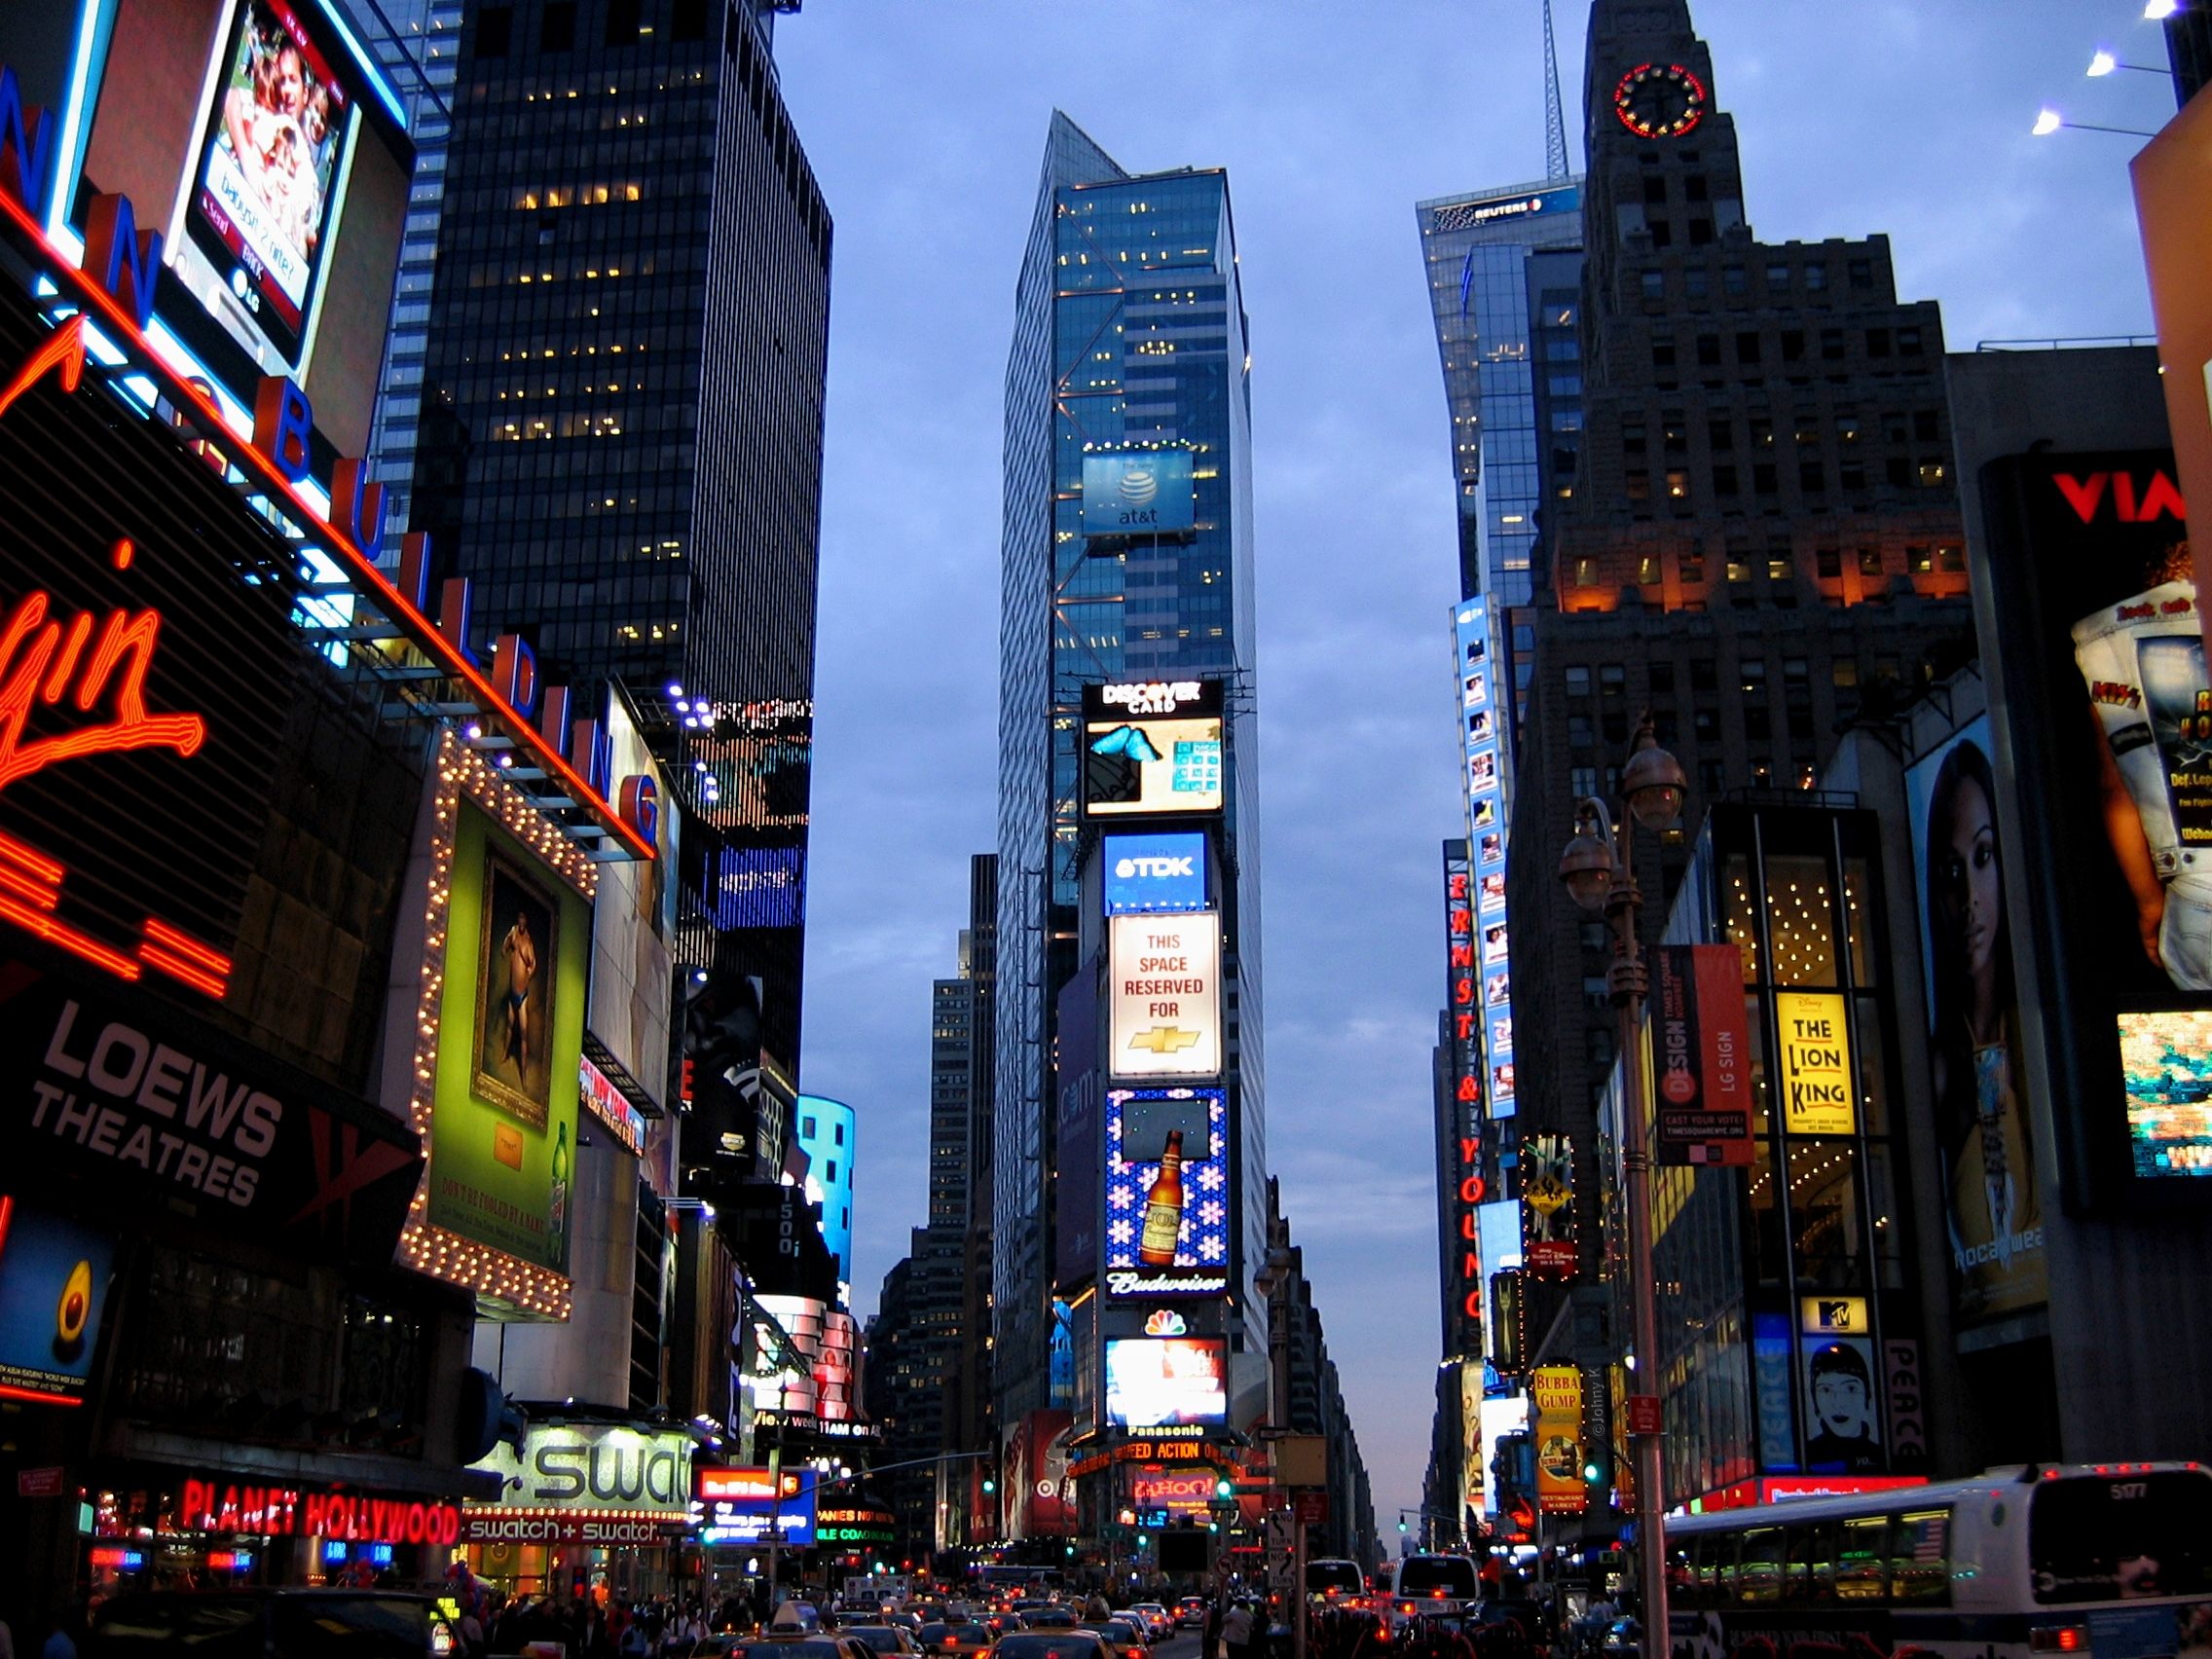 Description times square new york at dusk